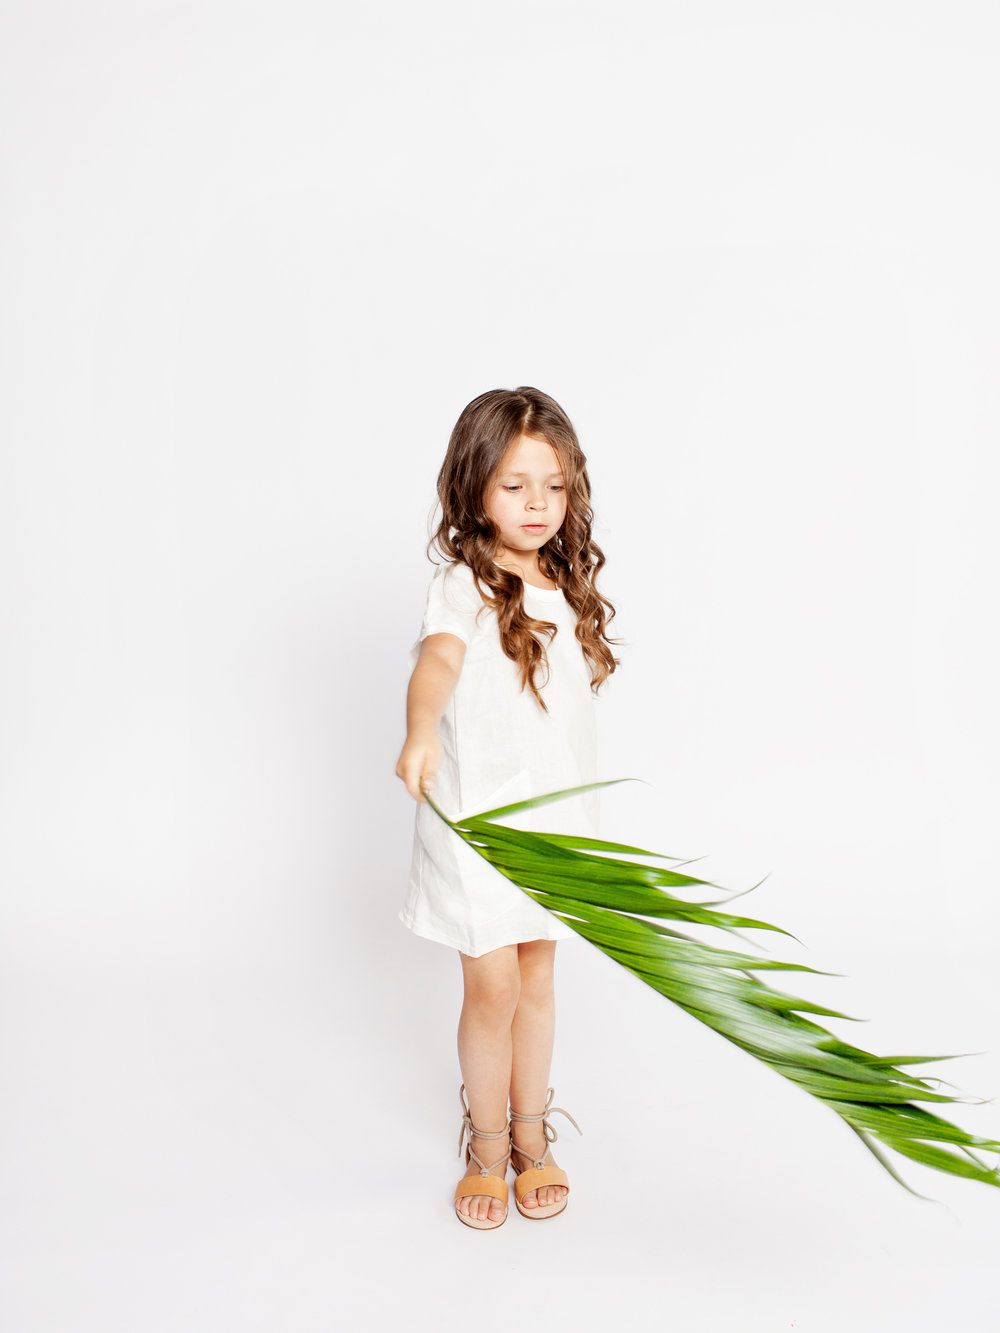 heather-moore-kids-commercial-fashion-photography.jpg